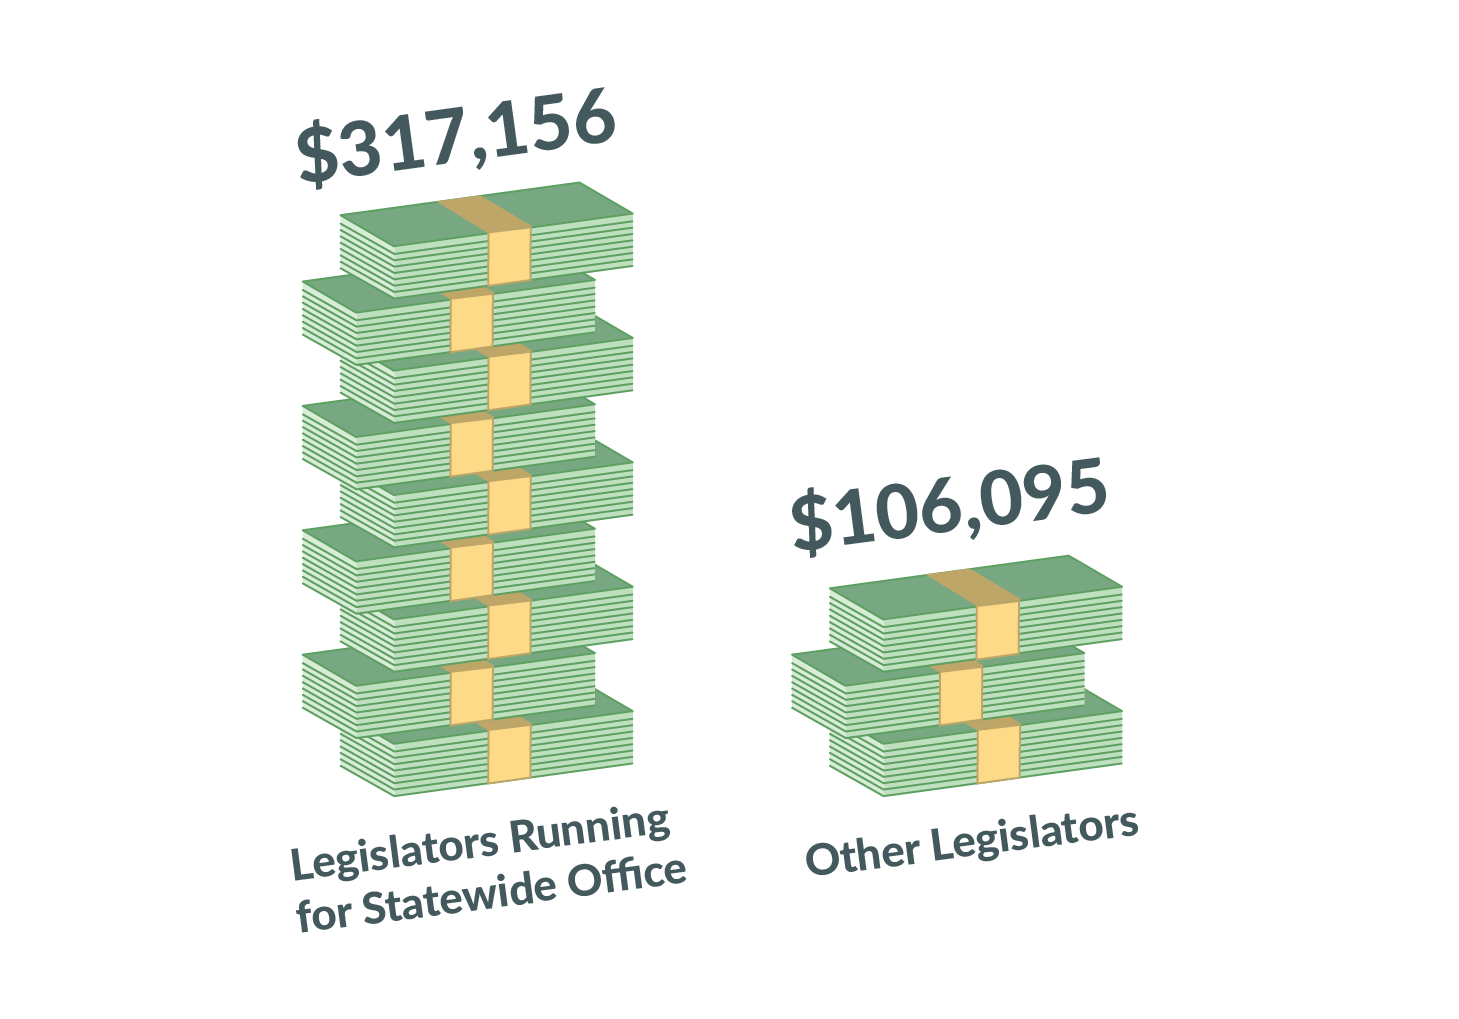 Chart showing candidates for state office raised $317,156 and other legislators raised $106,095